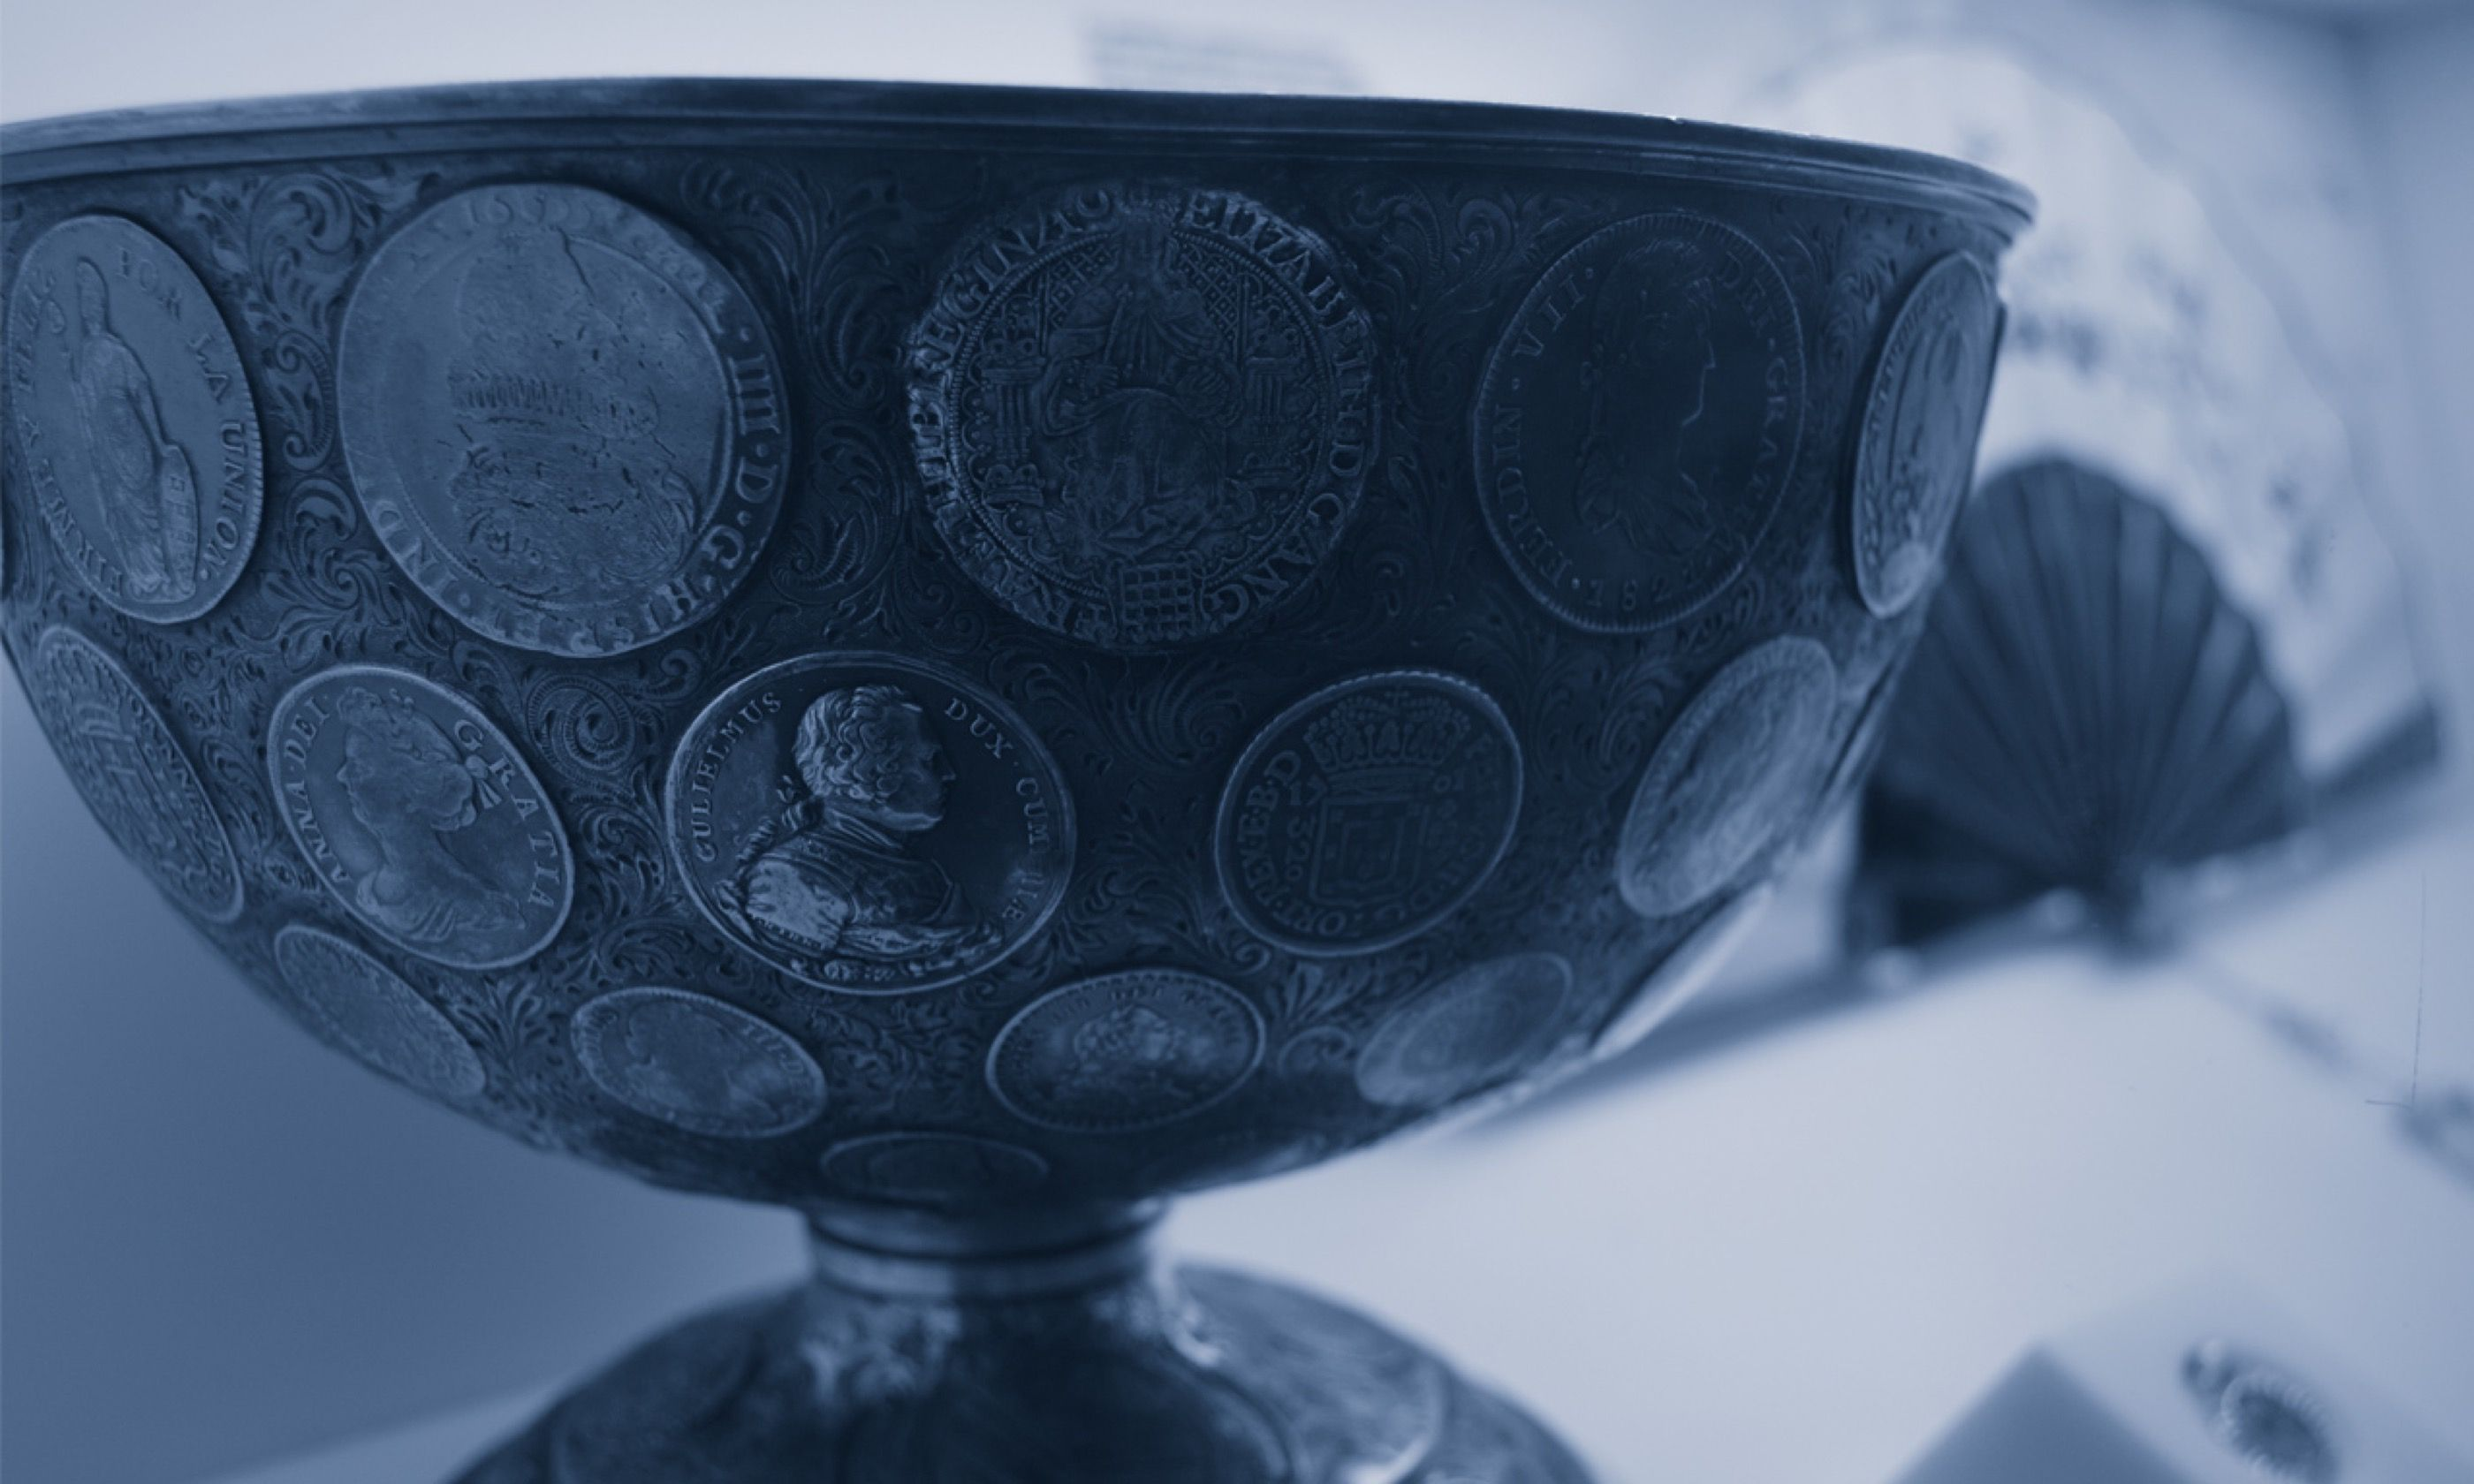 Coin encrusted cup (museudodinheiro.pt)